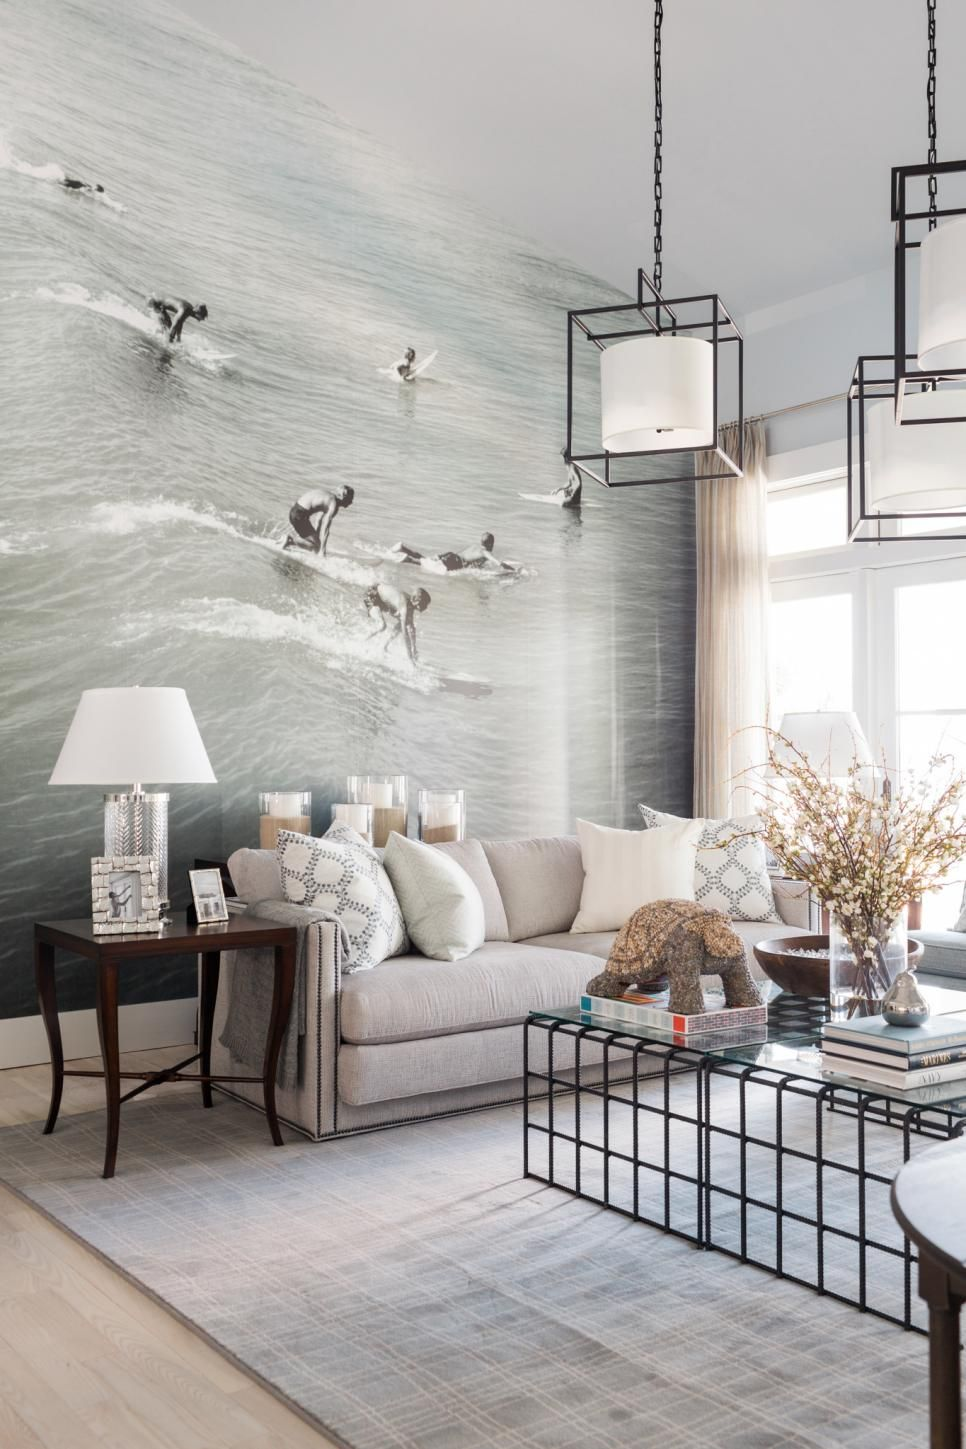 Living Room Hgtv Dream Home 2016 The Floor To Ceiling Photo Mural Is My Favorite Element In This Year S